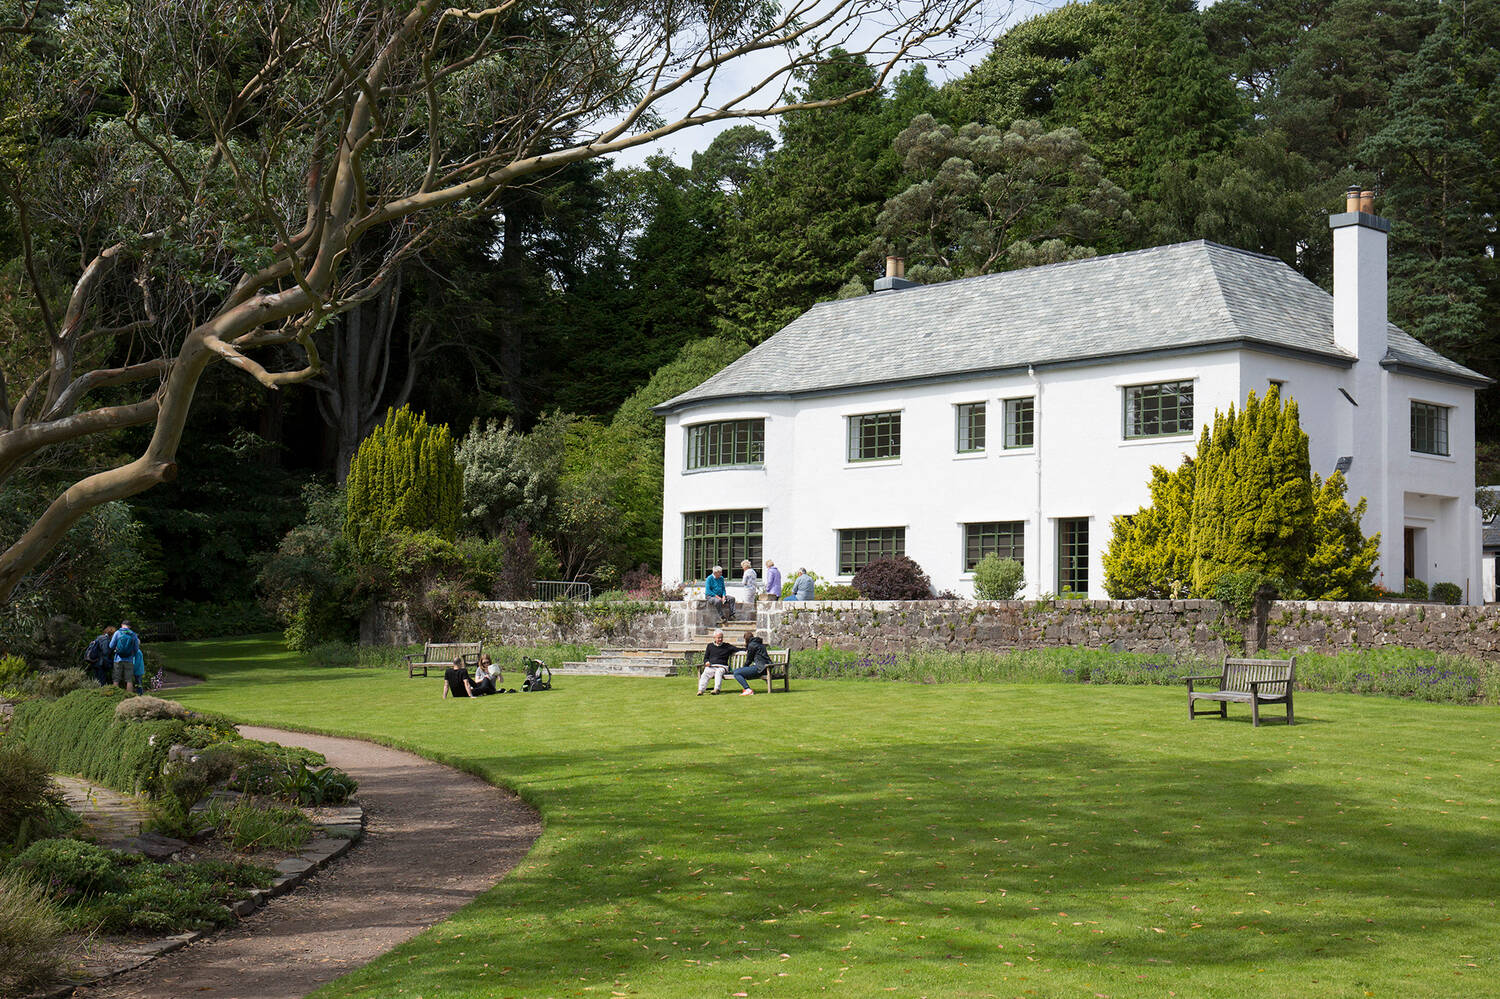 The Sawyer Gallery is located in Inverewe House